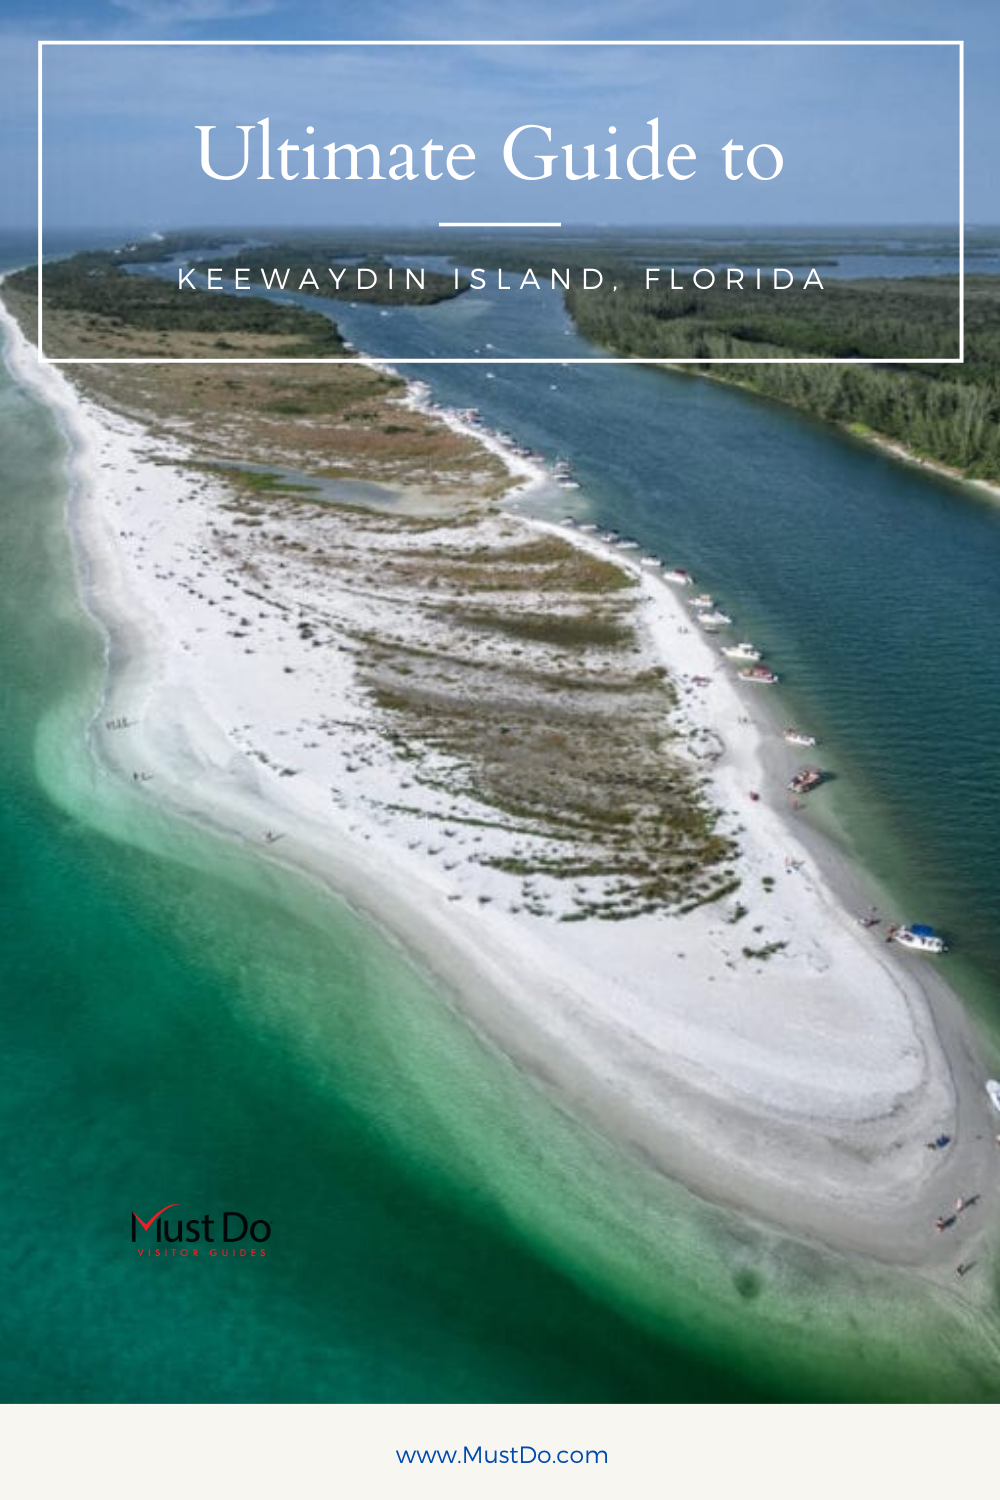 Ultimate Guide to Keewaydin Island, Florida near Naples and Marco Island.  | Must Do Visitor Guides